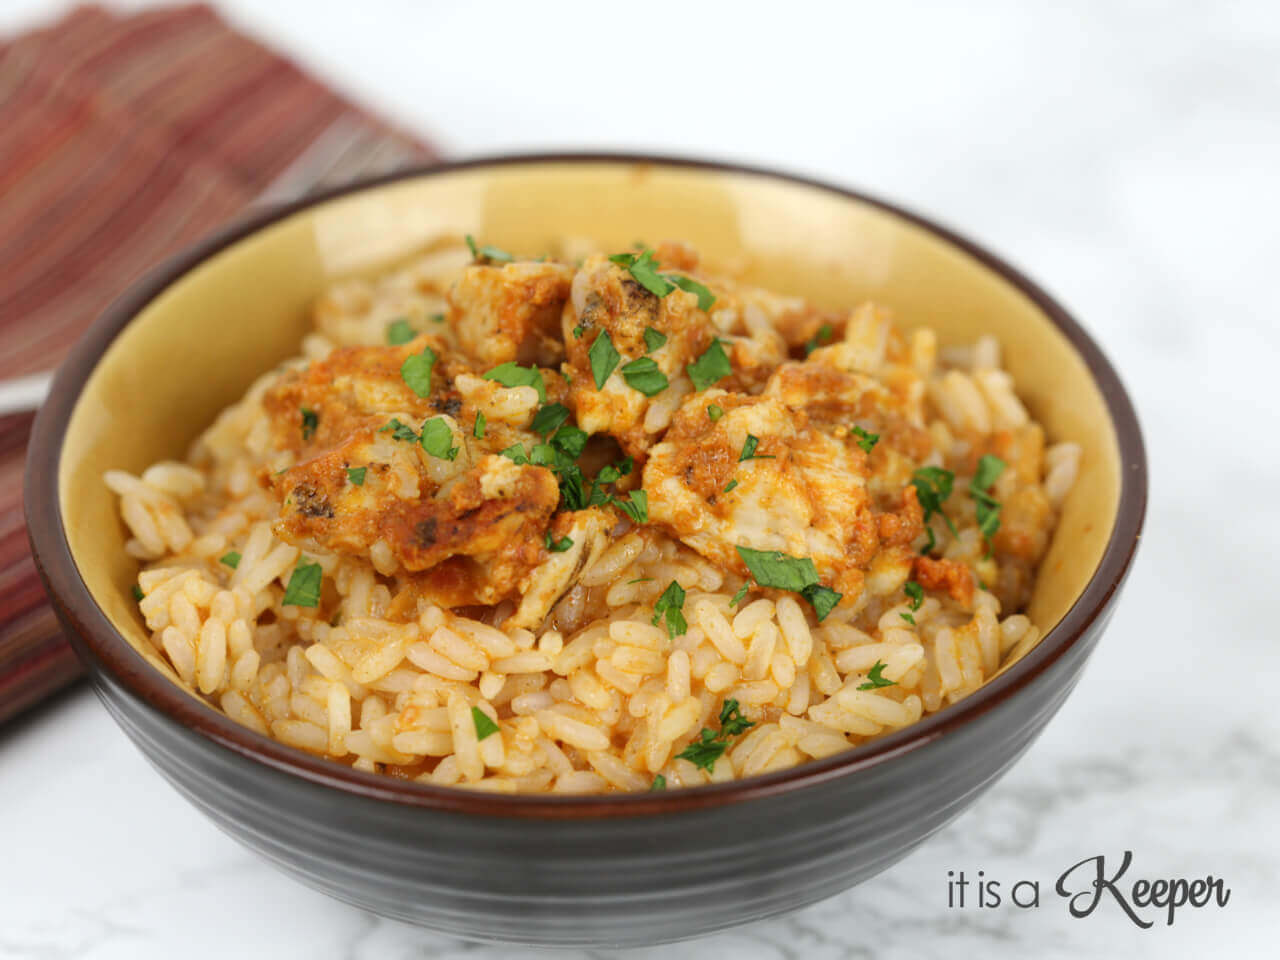 Easy Chicken Tikka Masala - this quick and easy recipe is ready in under 30 minutes